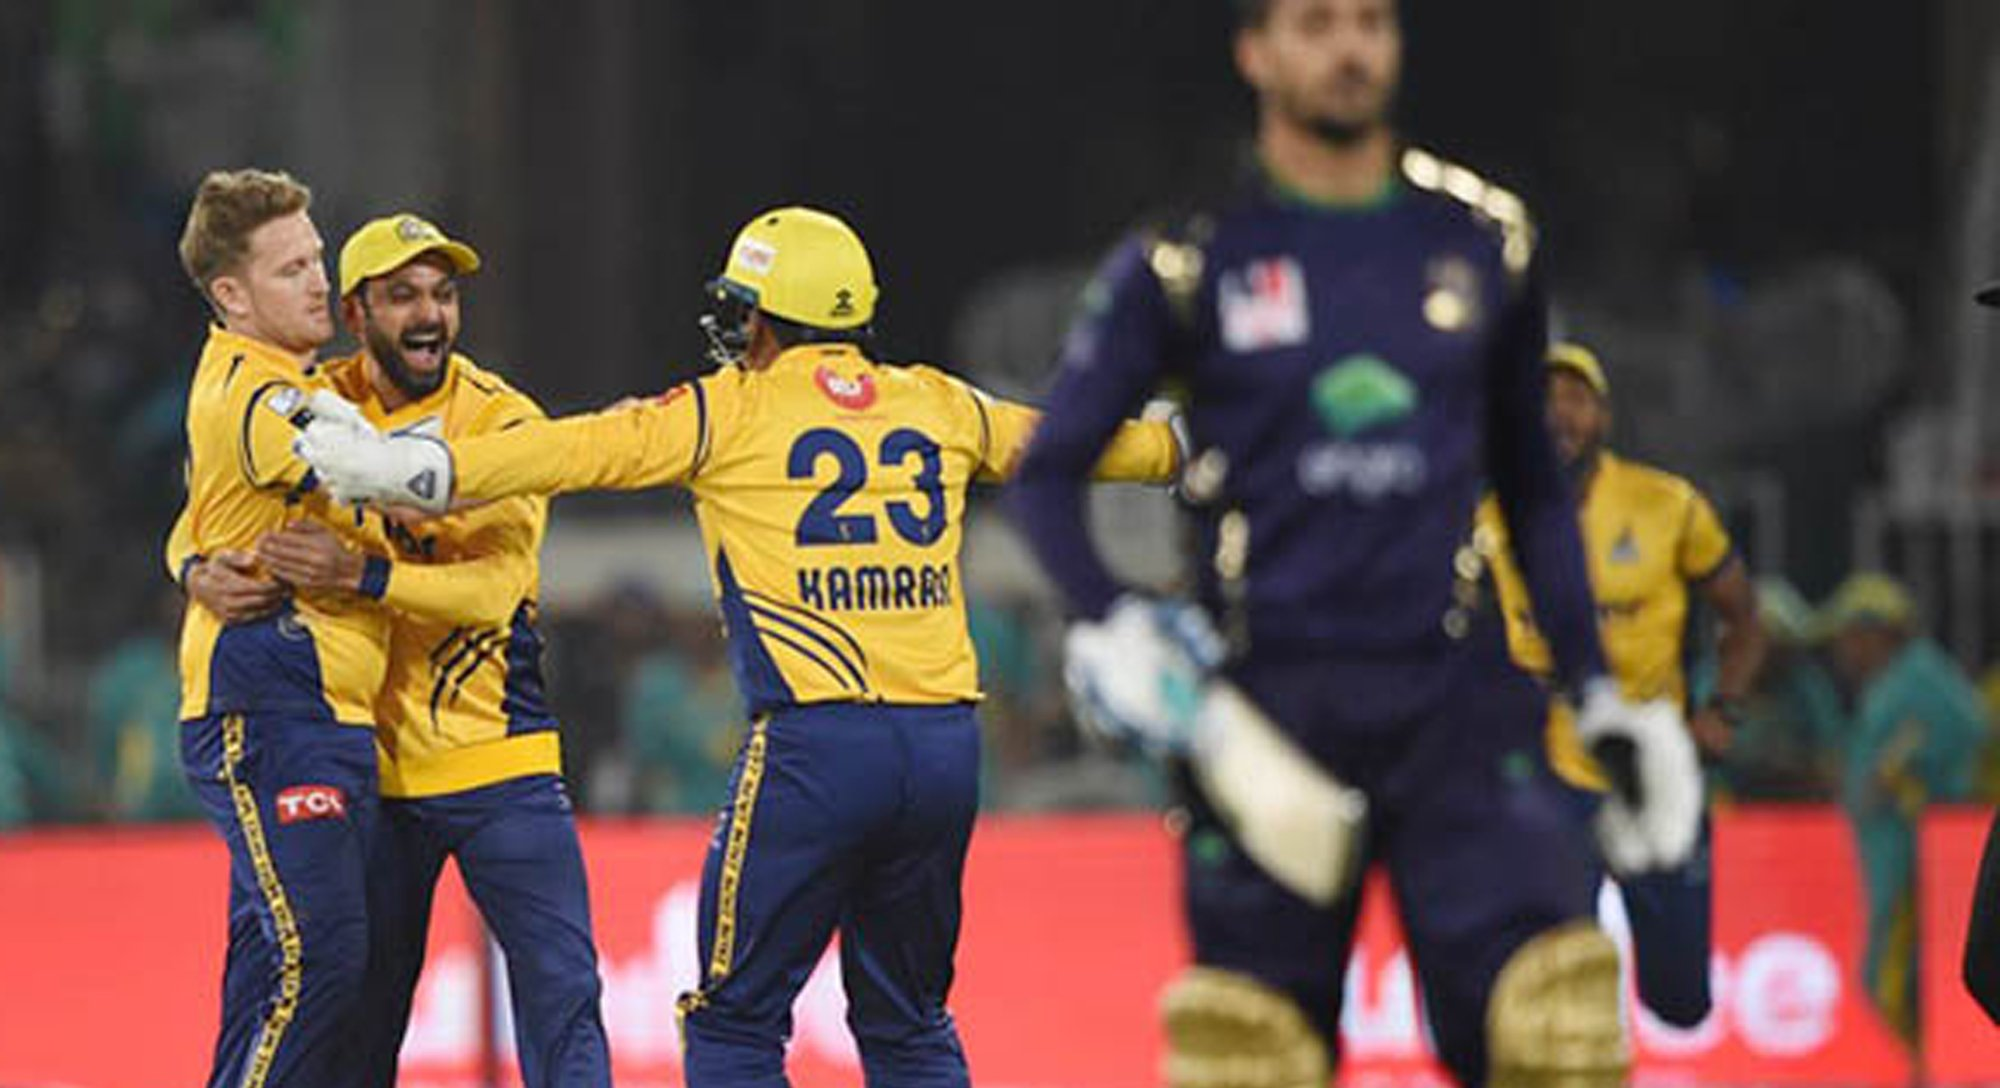 psl franchises receive tax relief from government